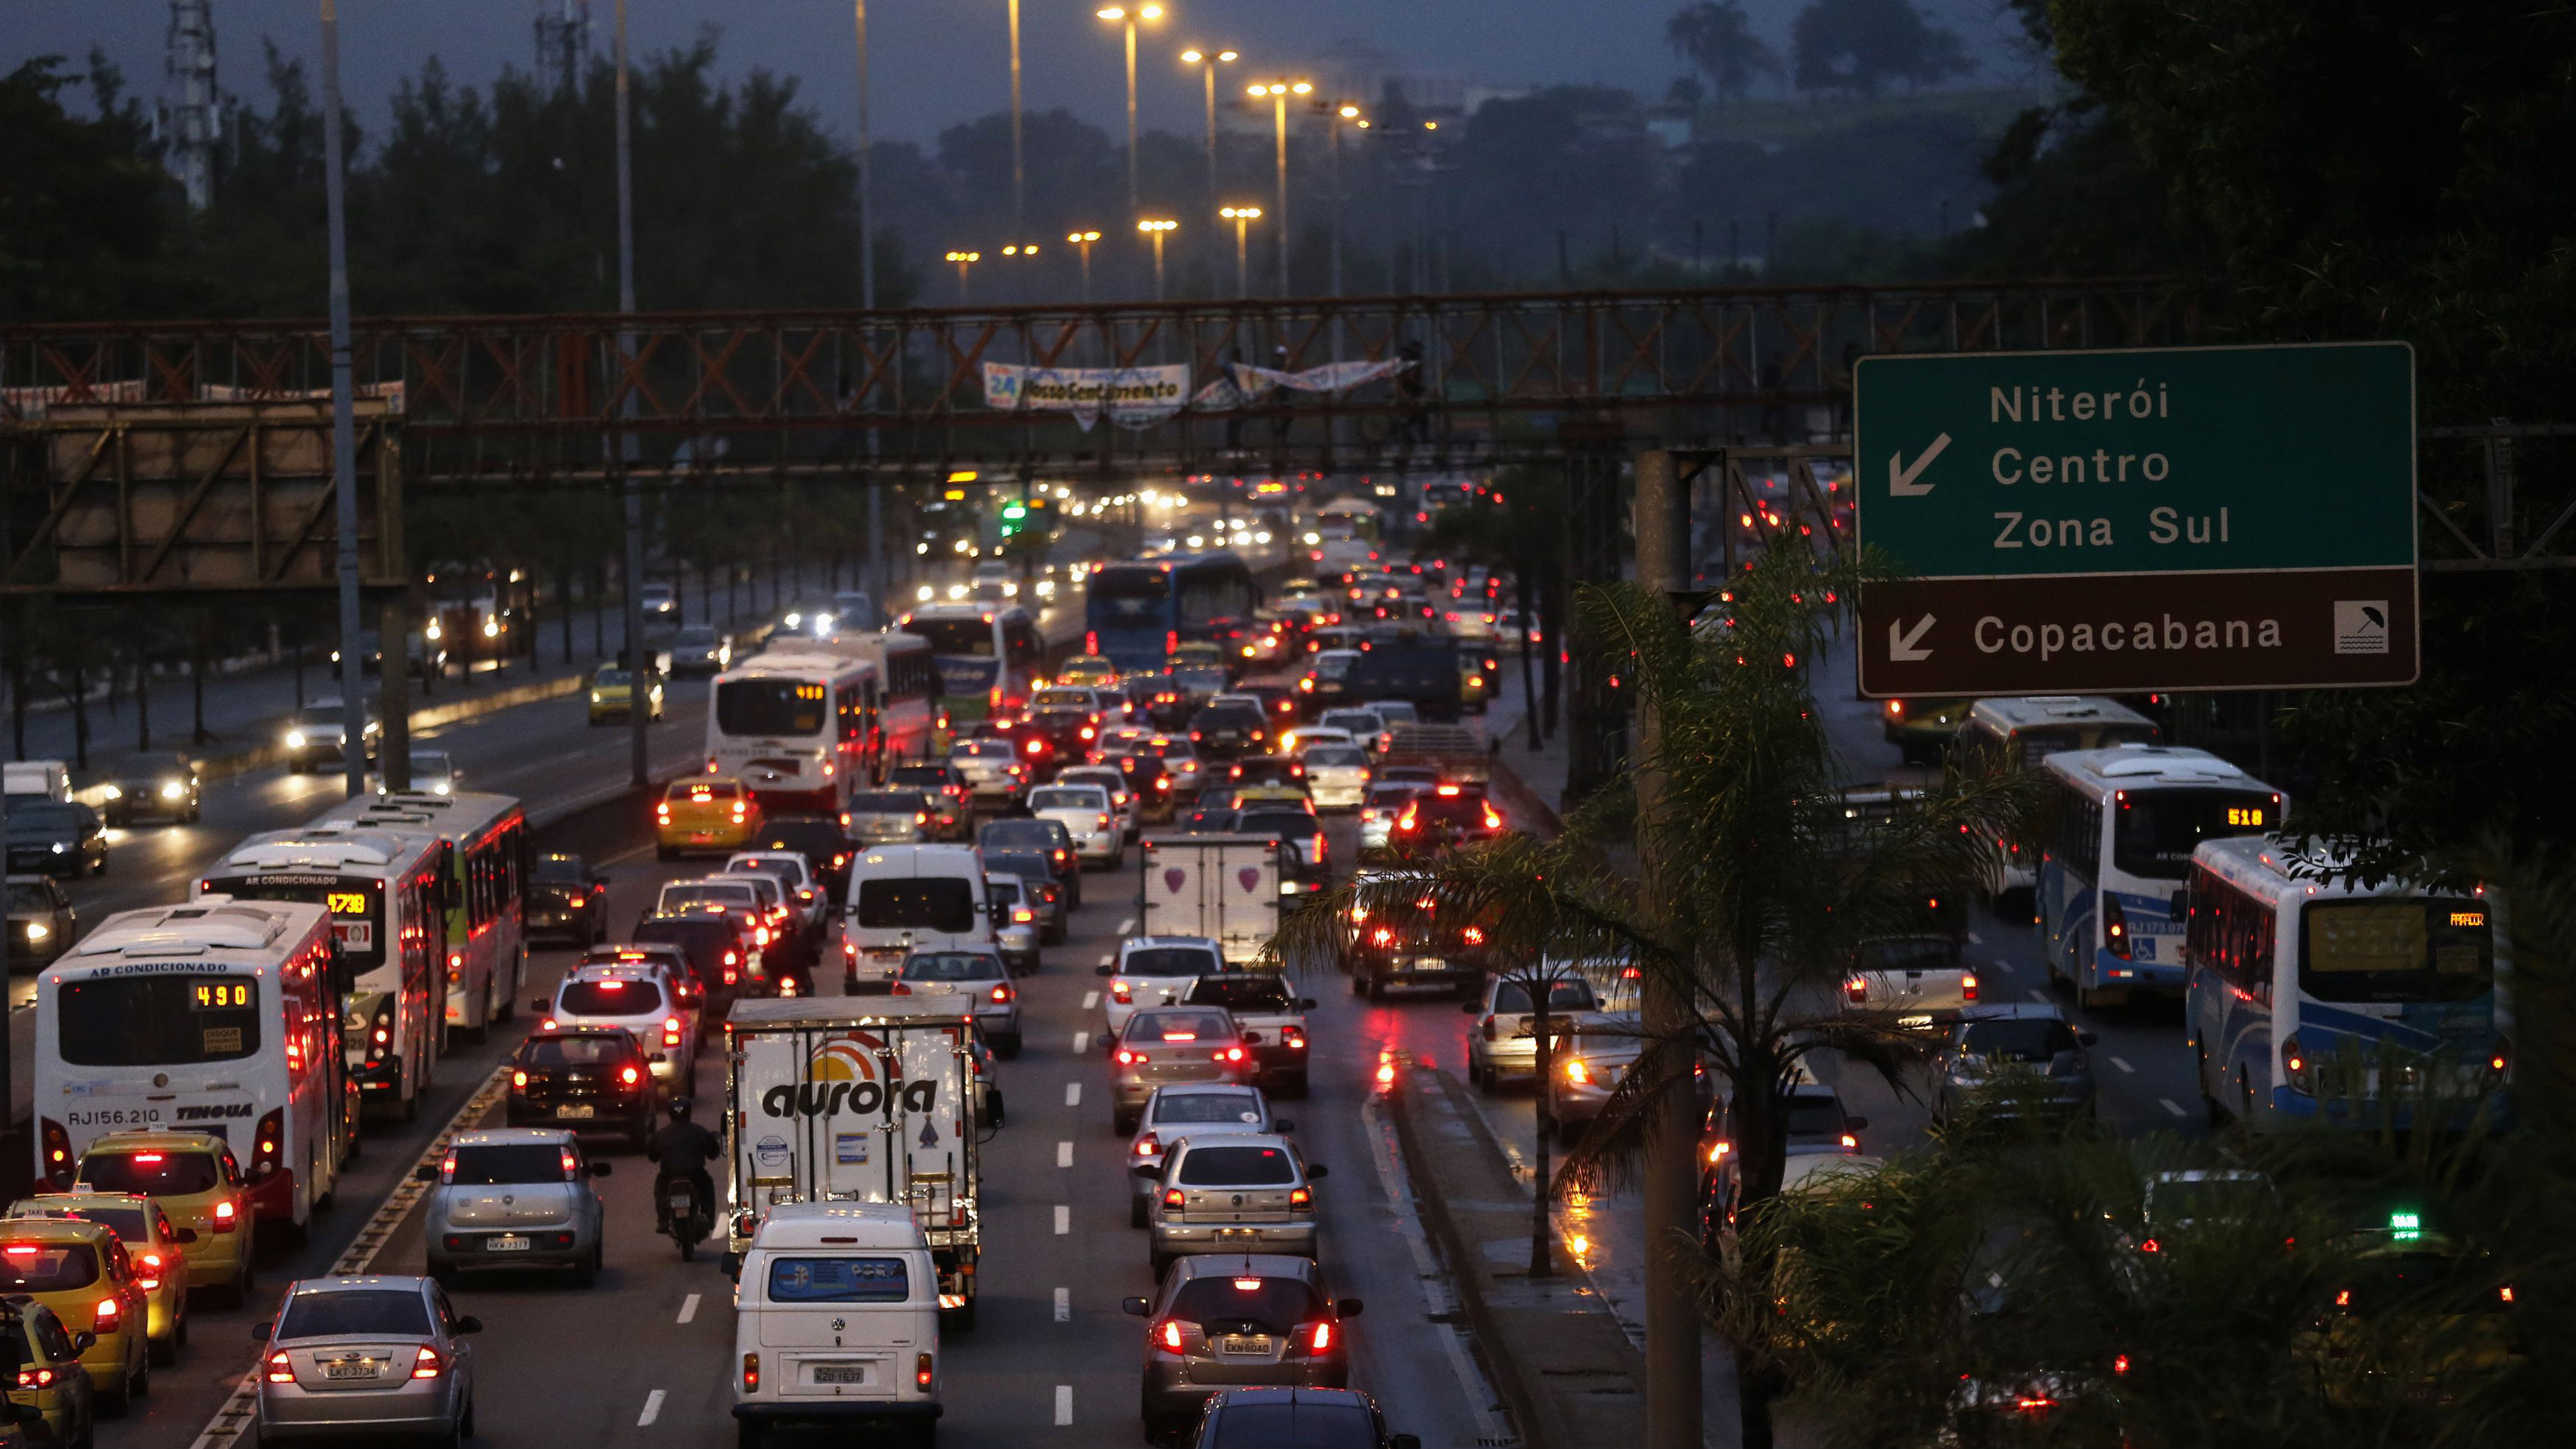 Cars stand in a traffic jam towards Rio's downtown during a 24-hour bus strike in Rio de Janeiro May 28, 2014. A new strike on public transport renewed concerns about services and public order 15 days before Rio and 11 other Brazilian cities play host to the upcoming World Cup soccer tournament. The strike is small and most buses are running normally, according local media. REUTERS/Sergio Moraes